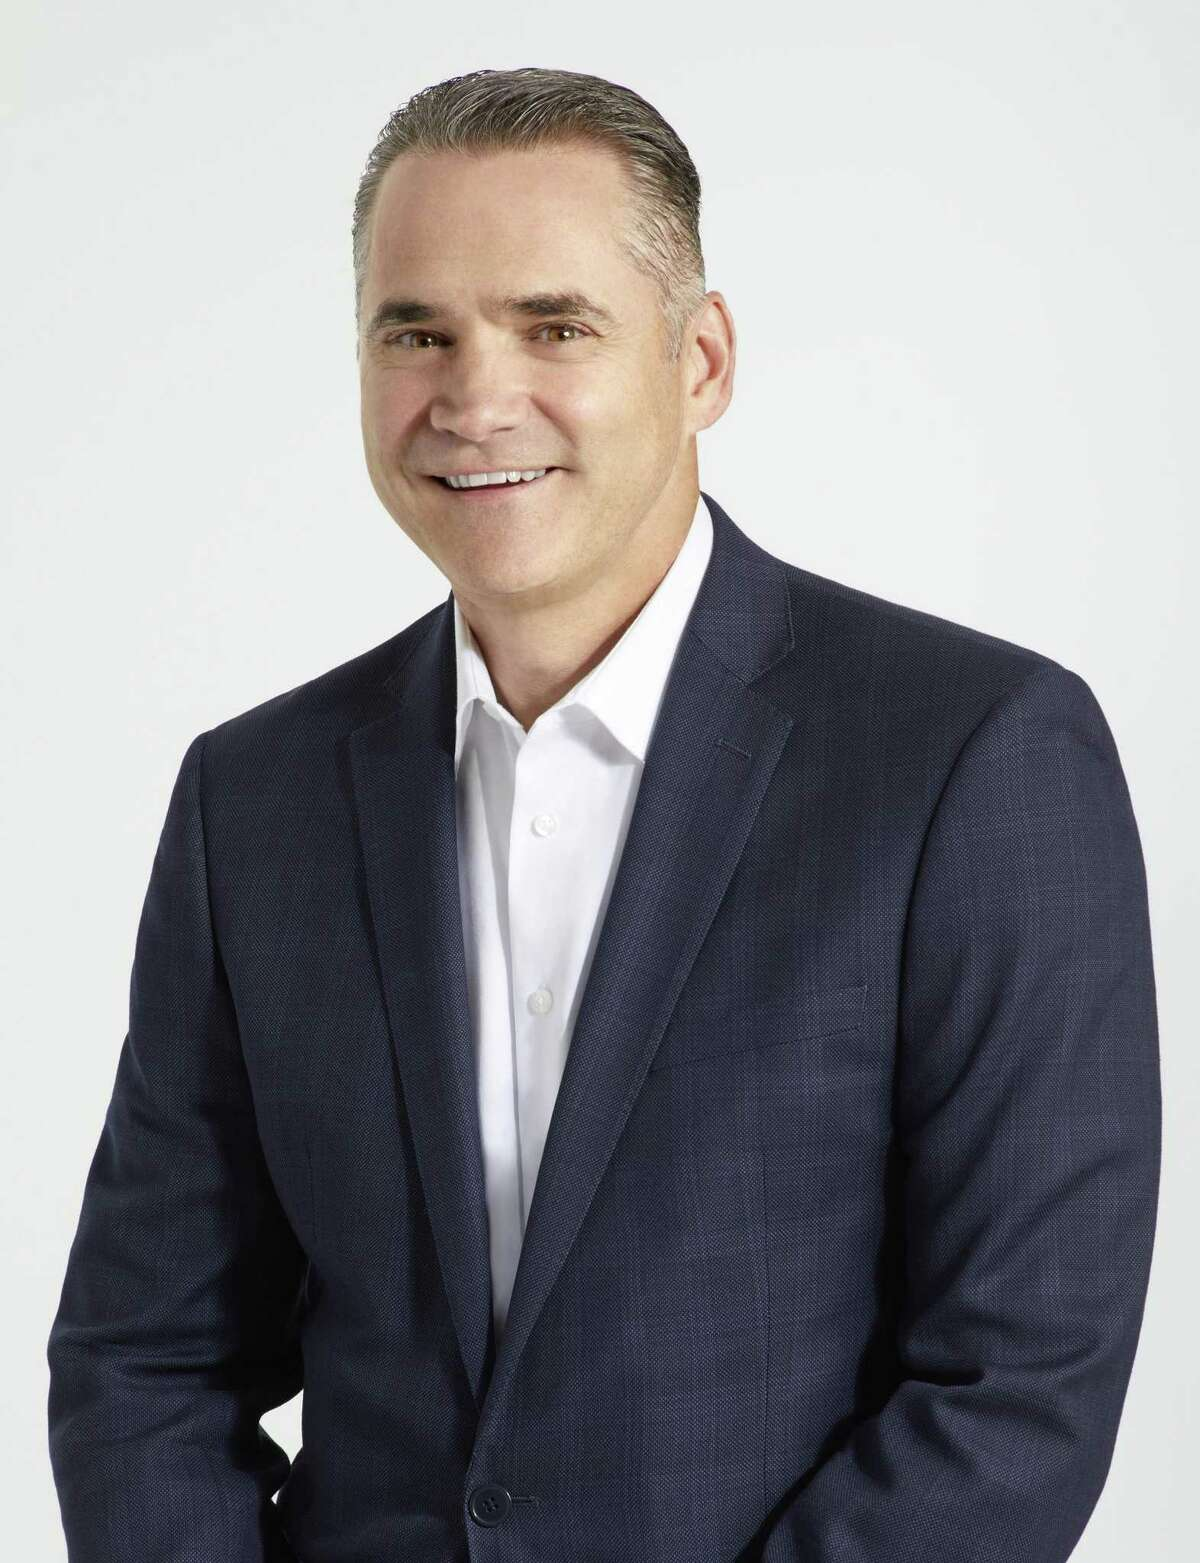 Mike DeLuca, president and group publisher of Hearst Connecticut Media Group.